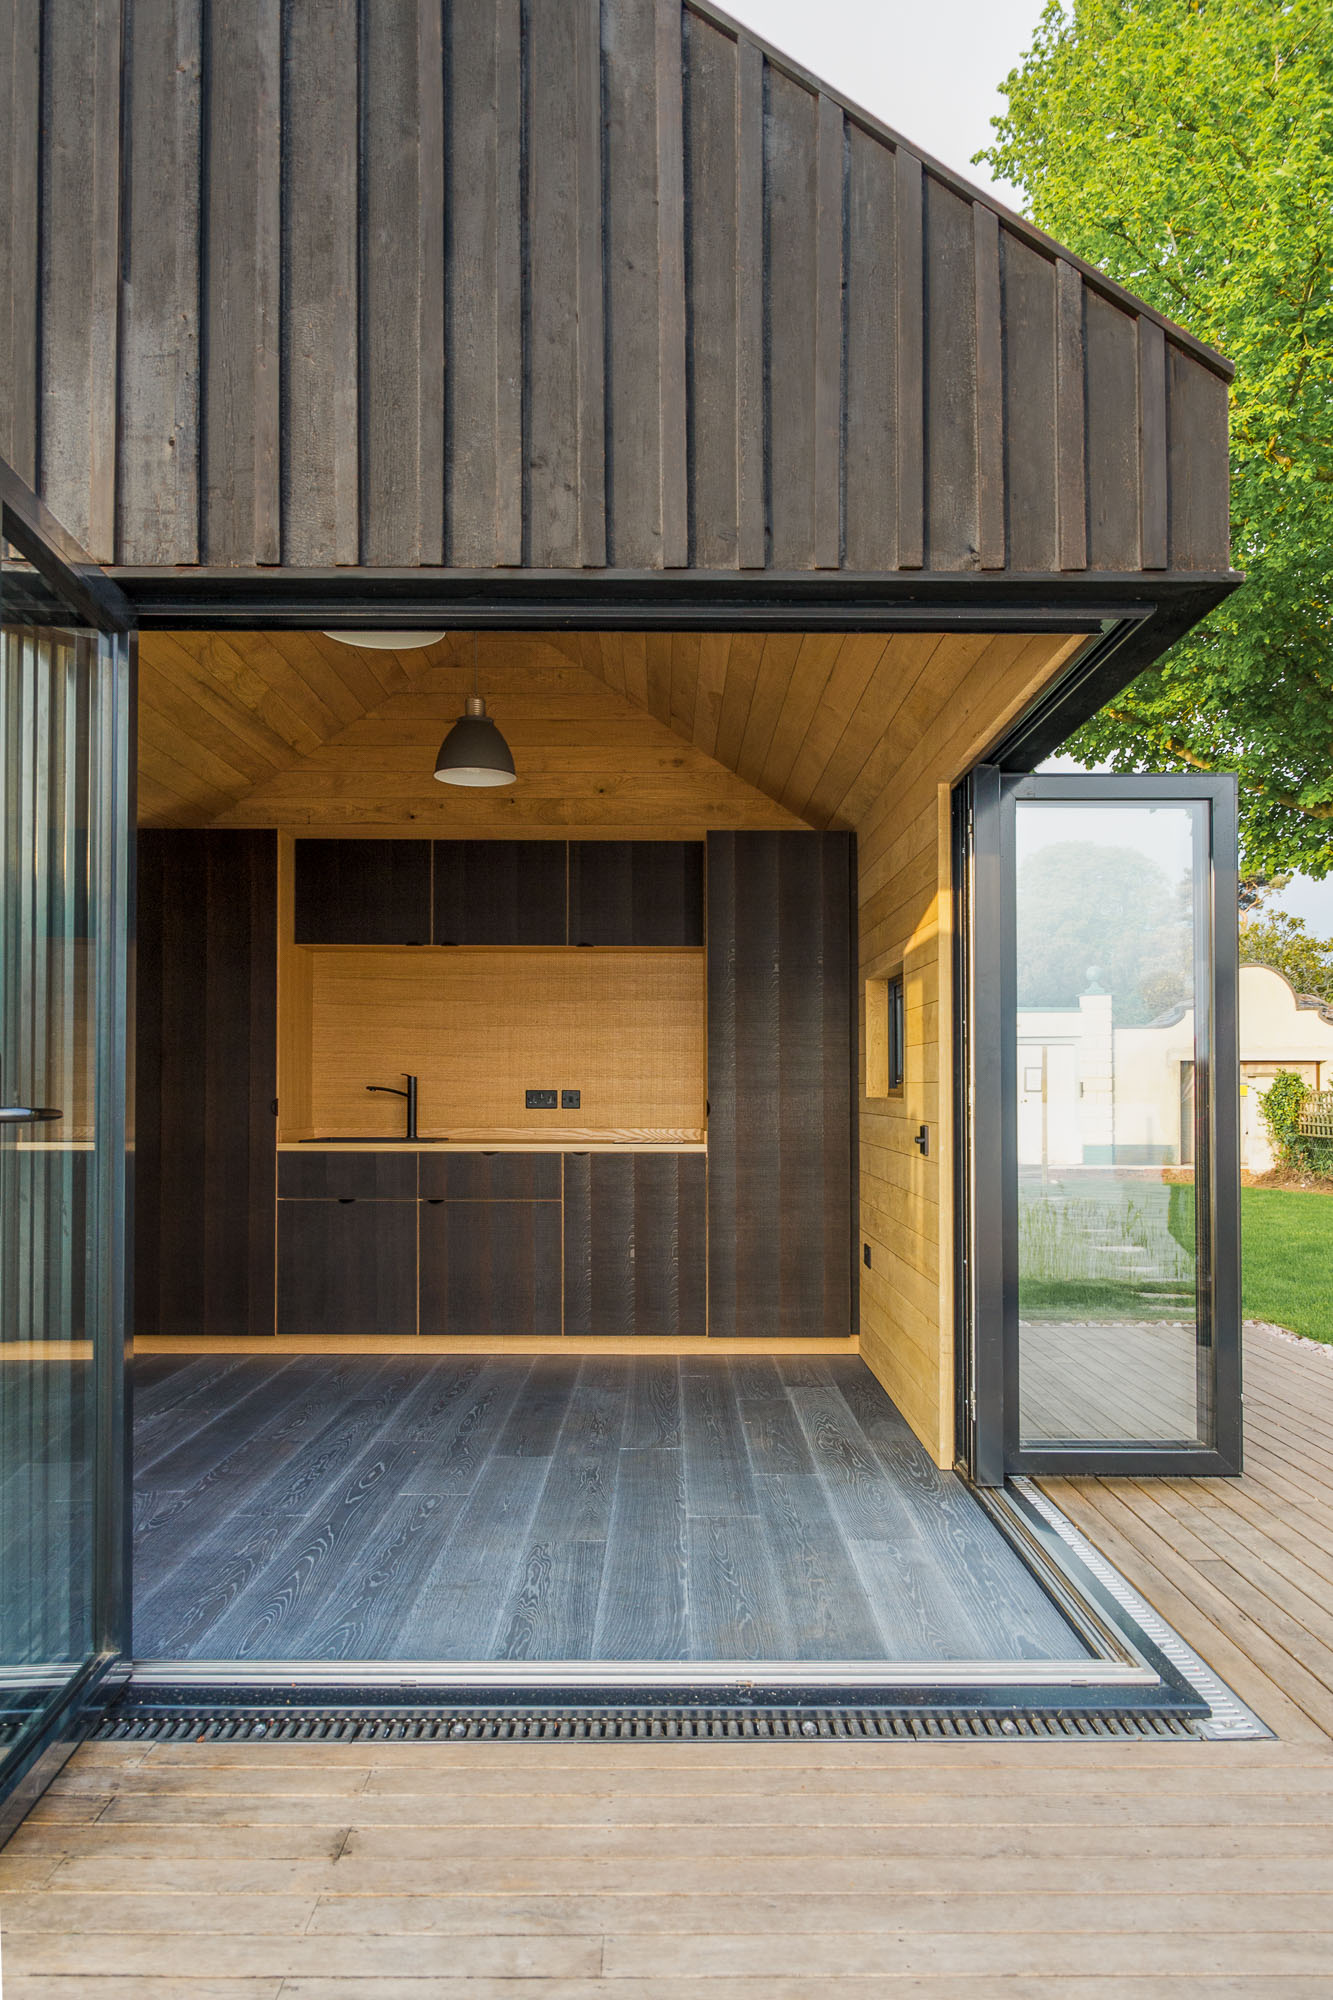 wooden cabin with shou sugi ban cladding and built in kitchen with bi-fold doors open